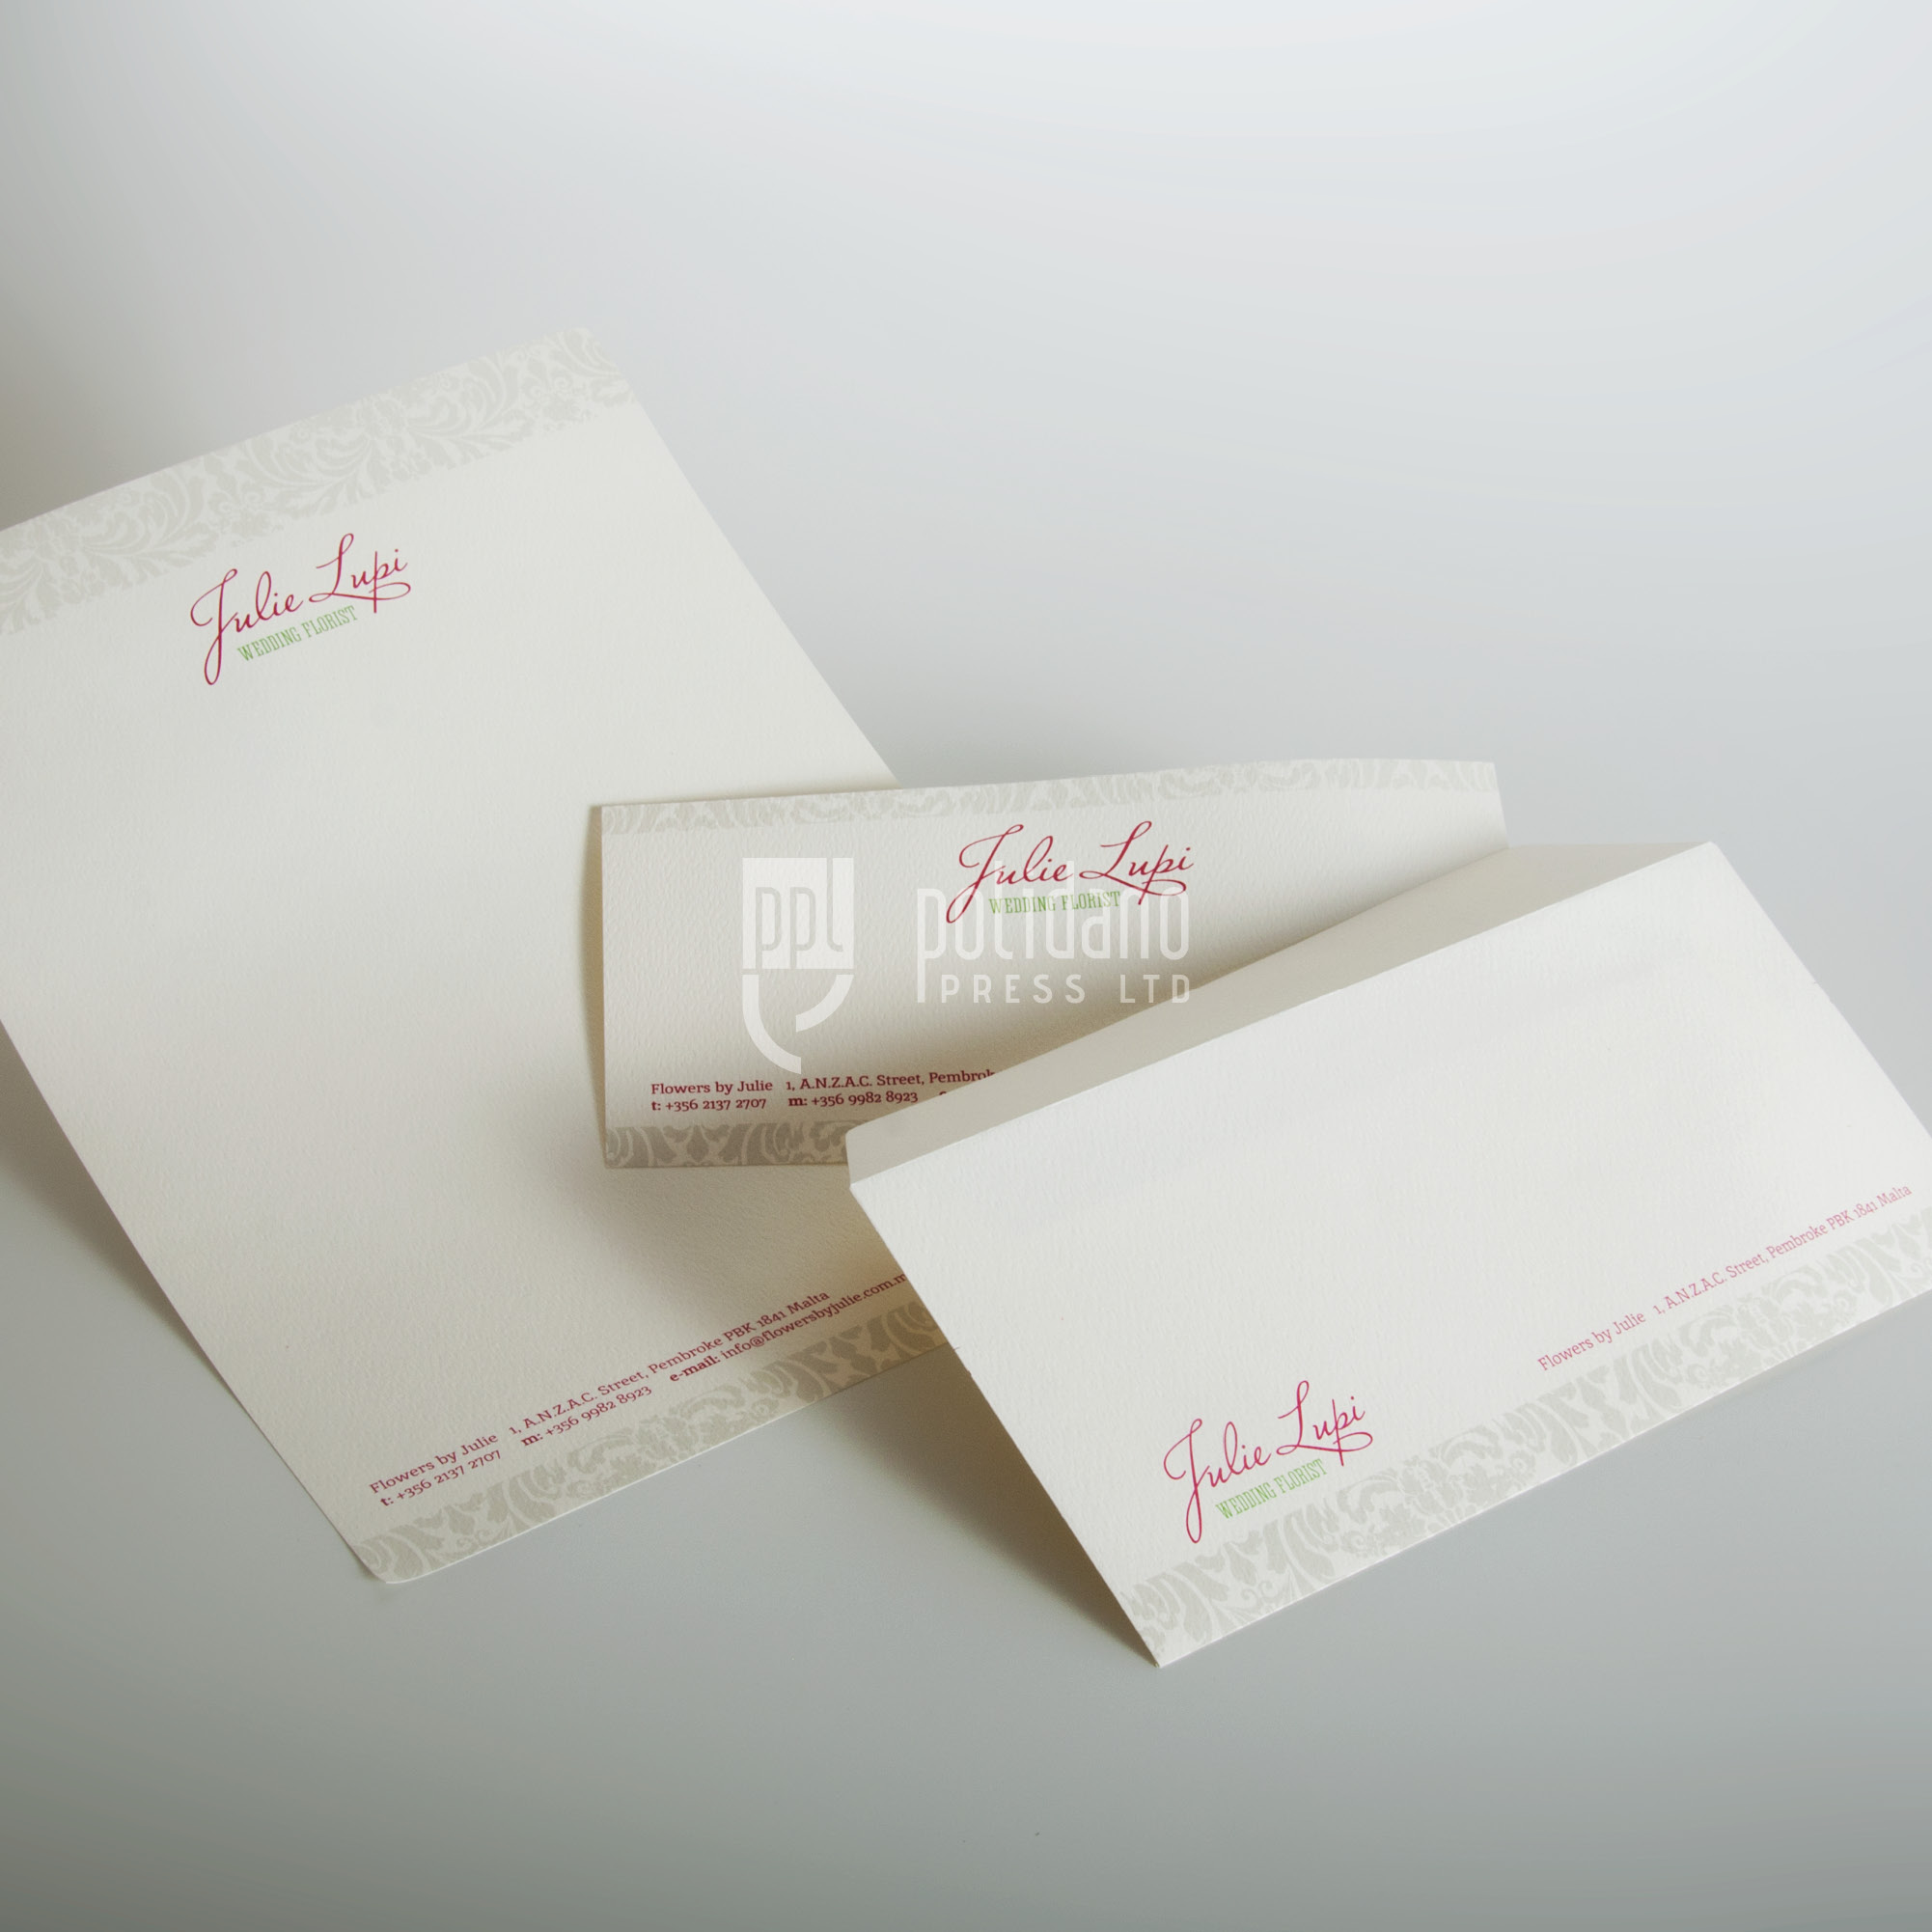 Julie Lupi stationery